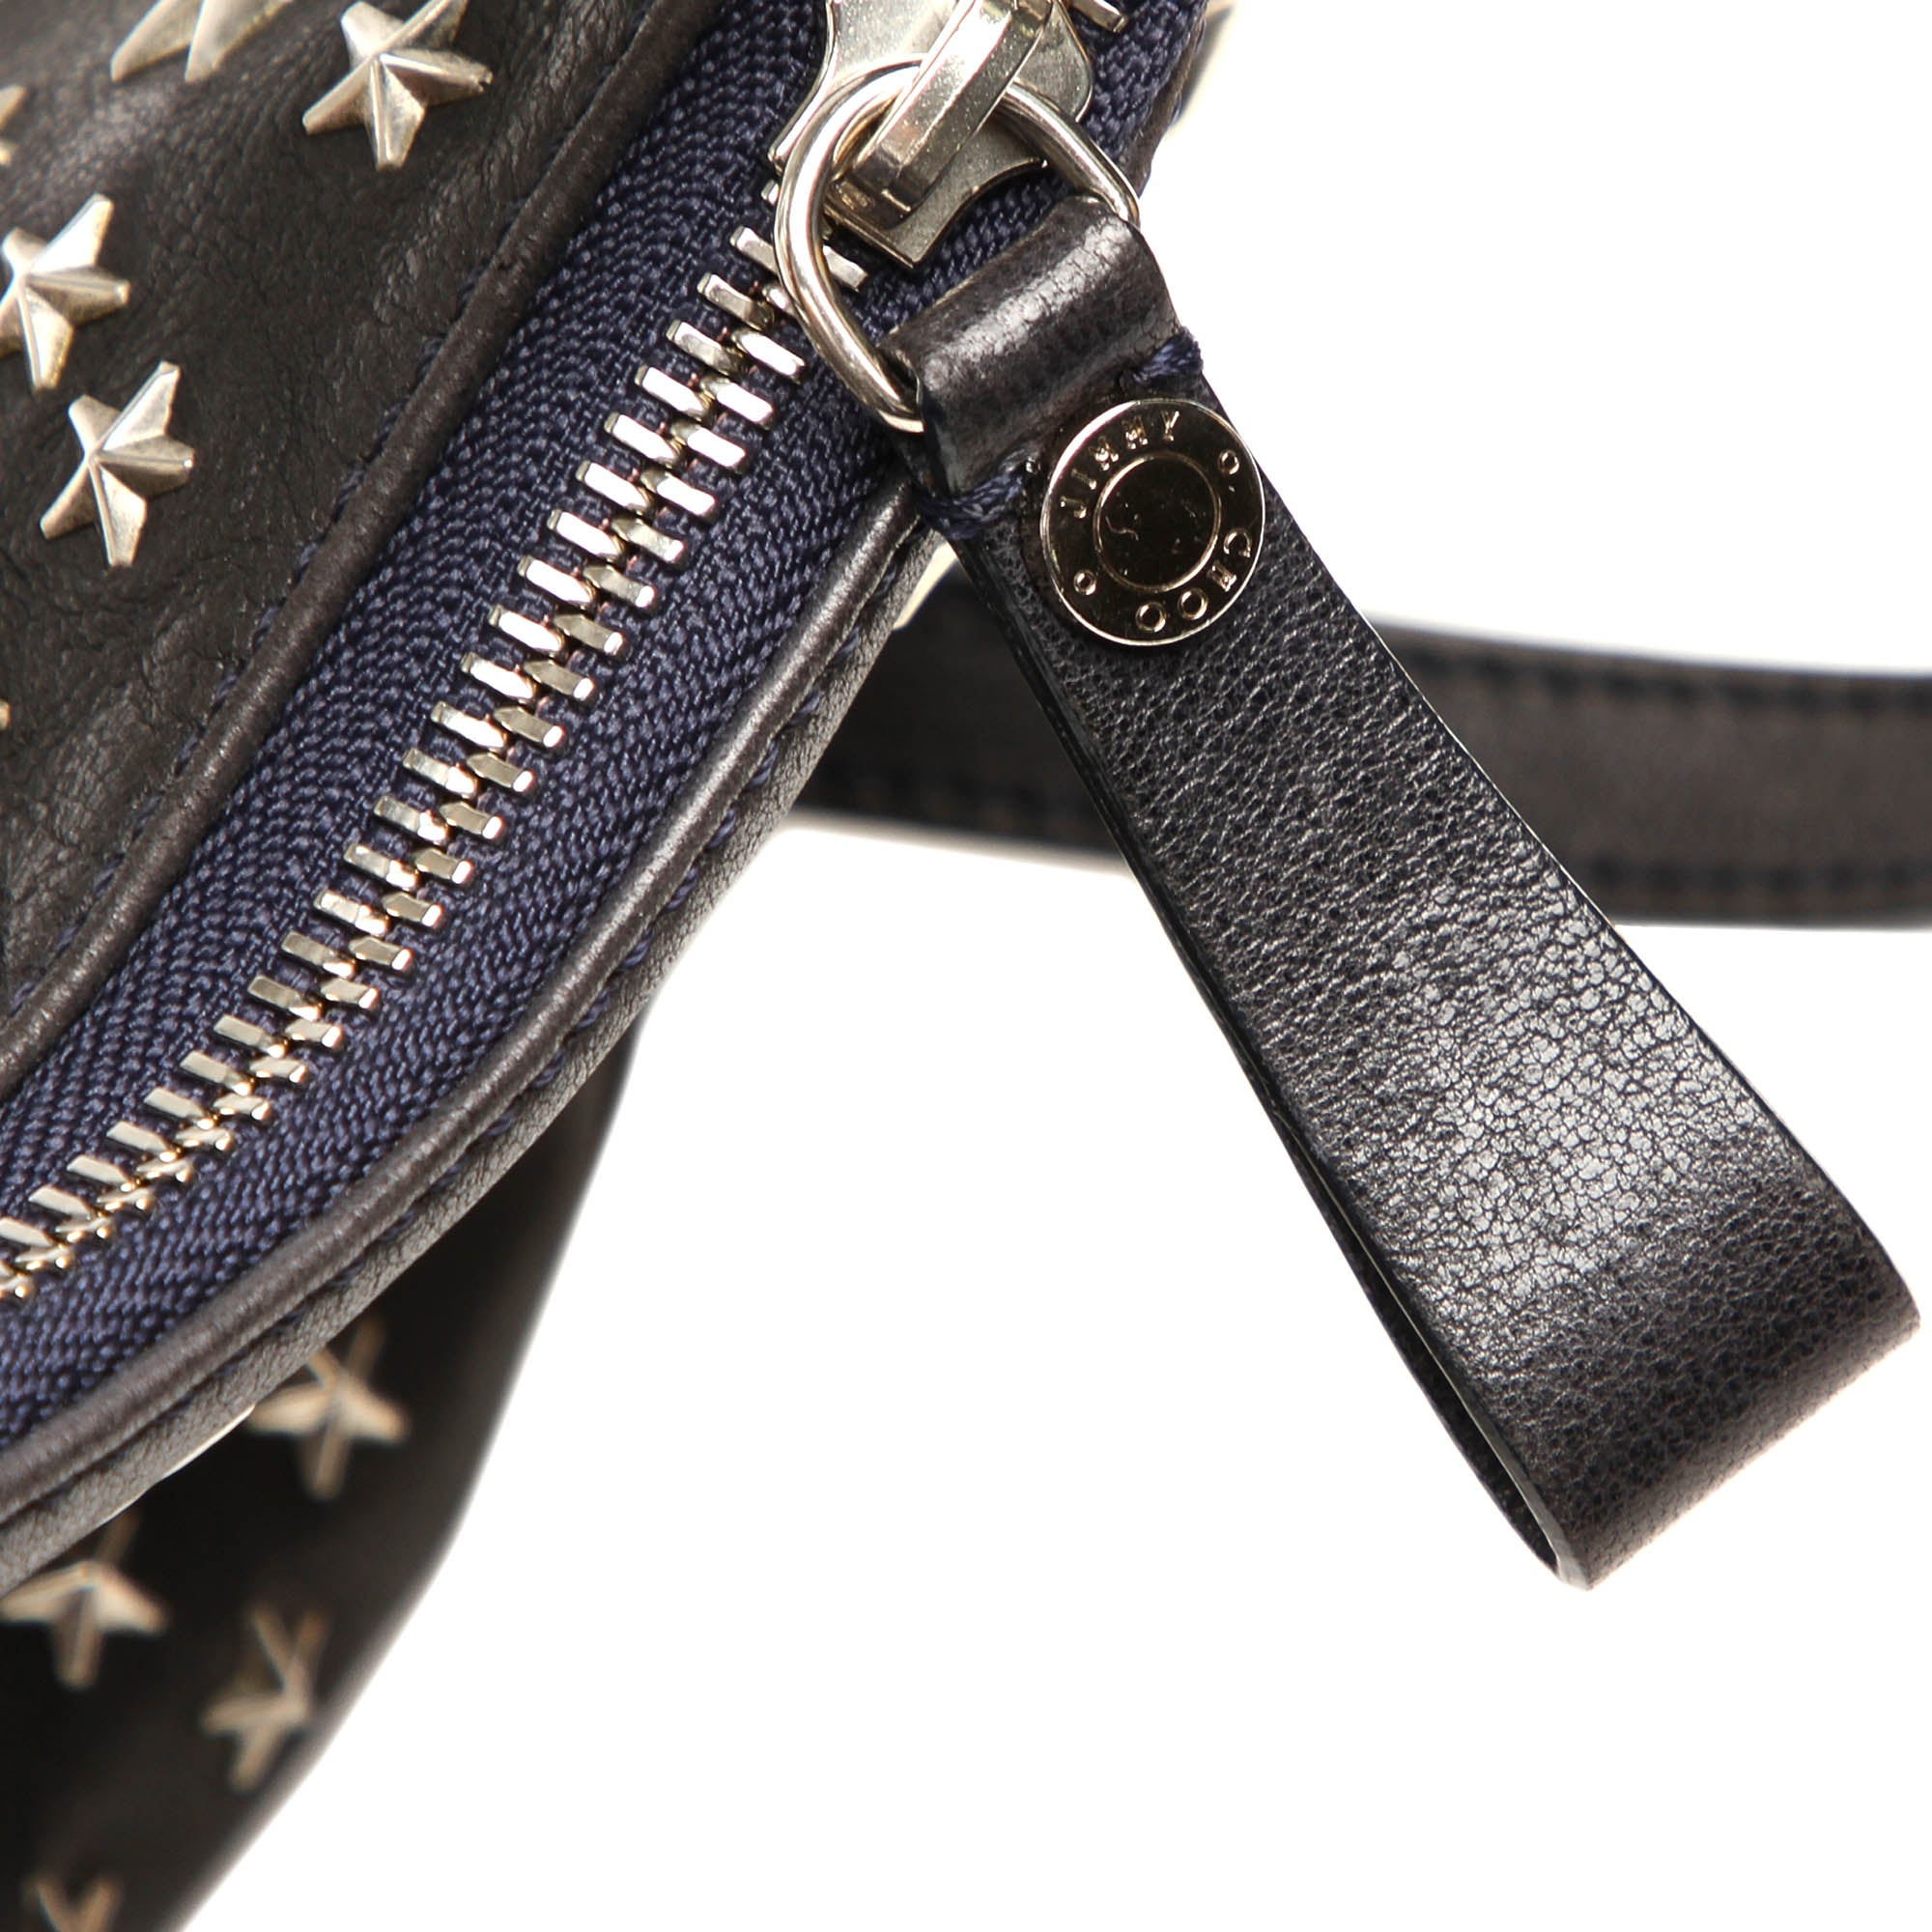 Jimmy Choo Black Studded Stella Star Leather Handbag